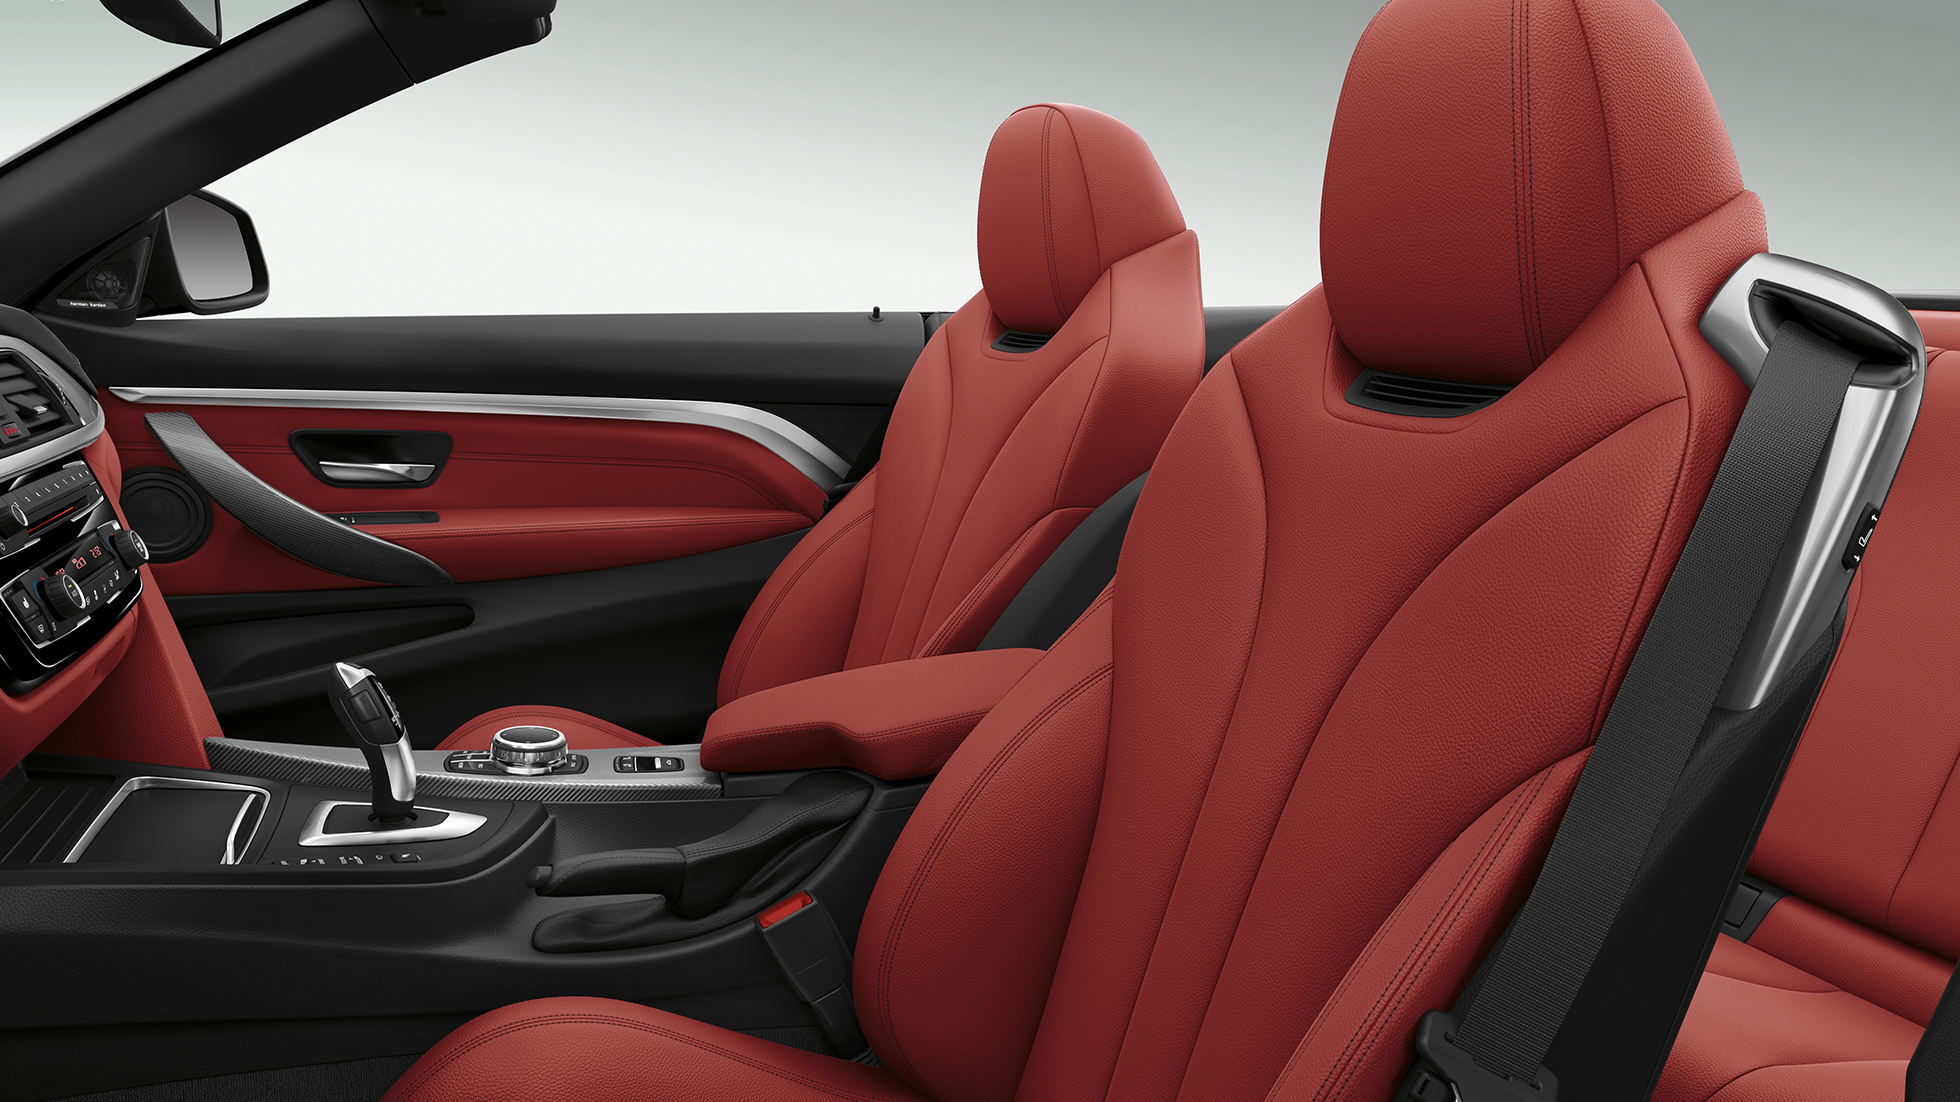 BMW 4 Series Convertible, Model Sport Line interior